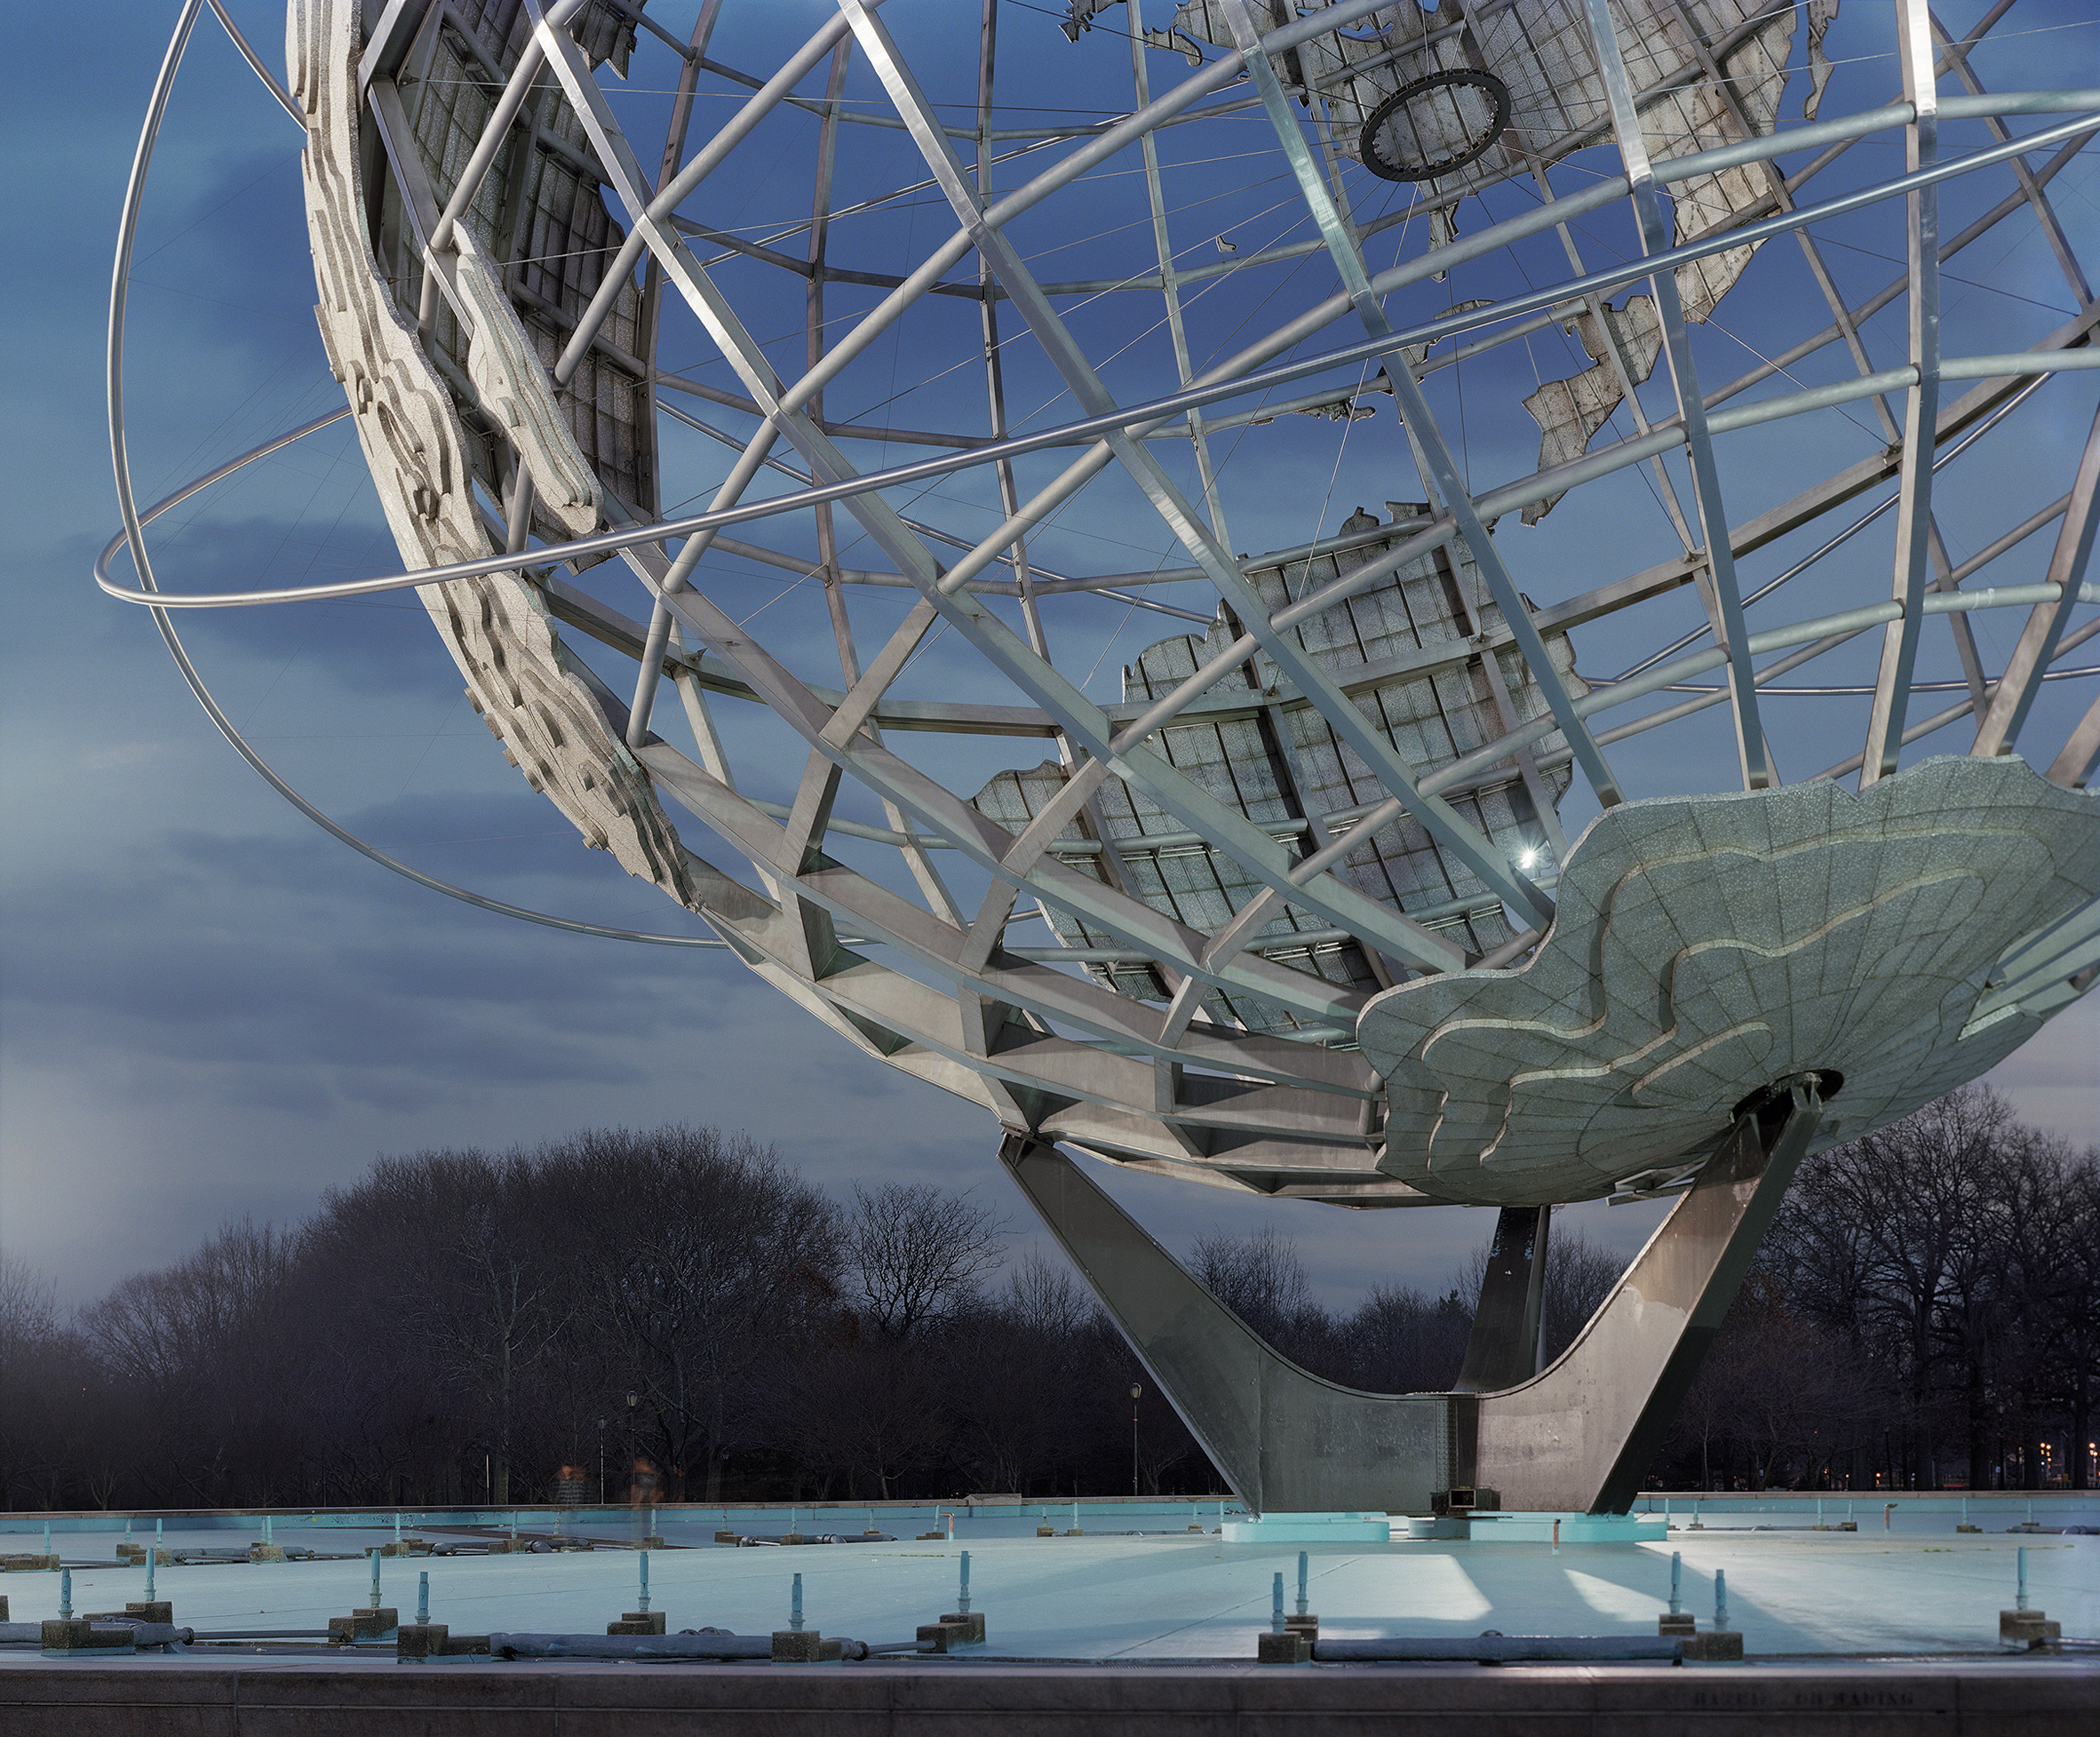 """Jade Doskow's ten-year photography project documents the """"Lost Utopias"""" of past World's Fairs"""